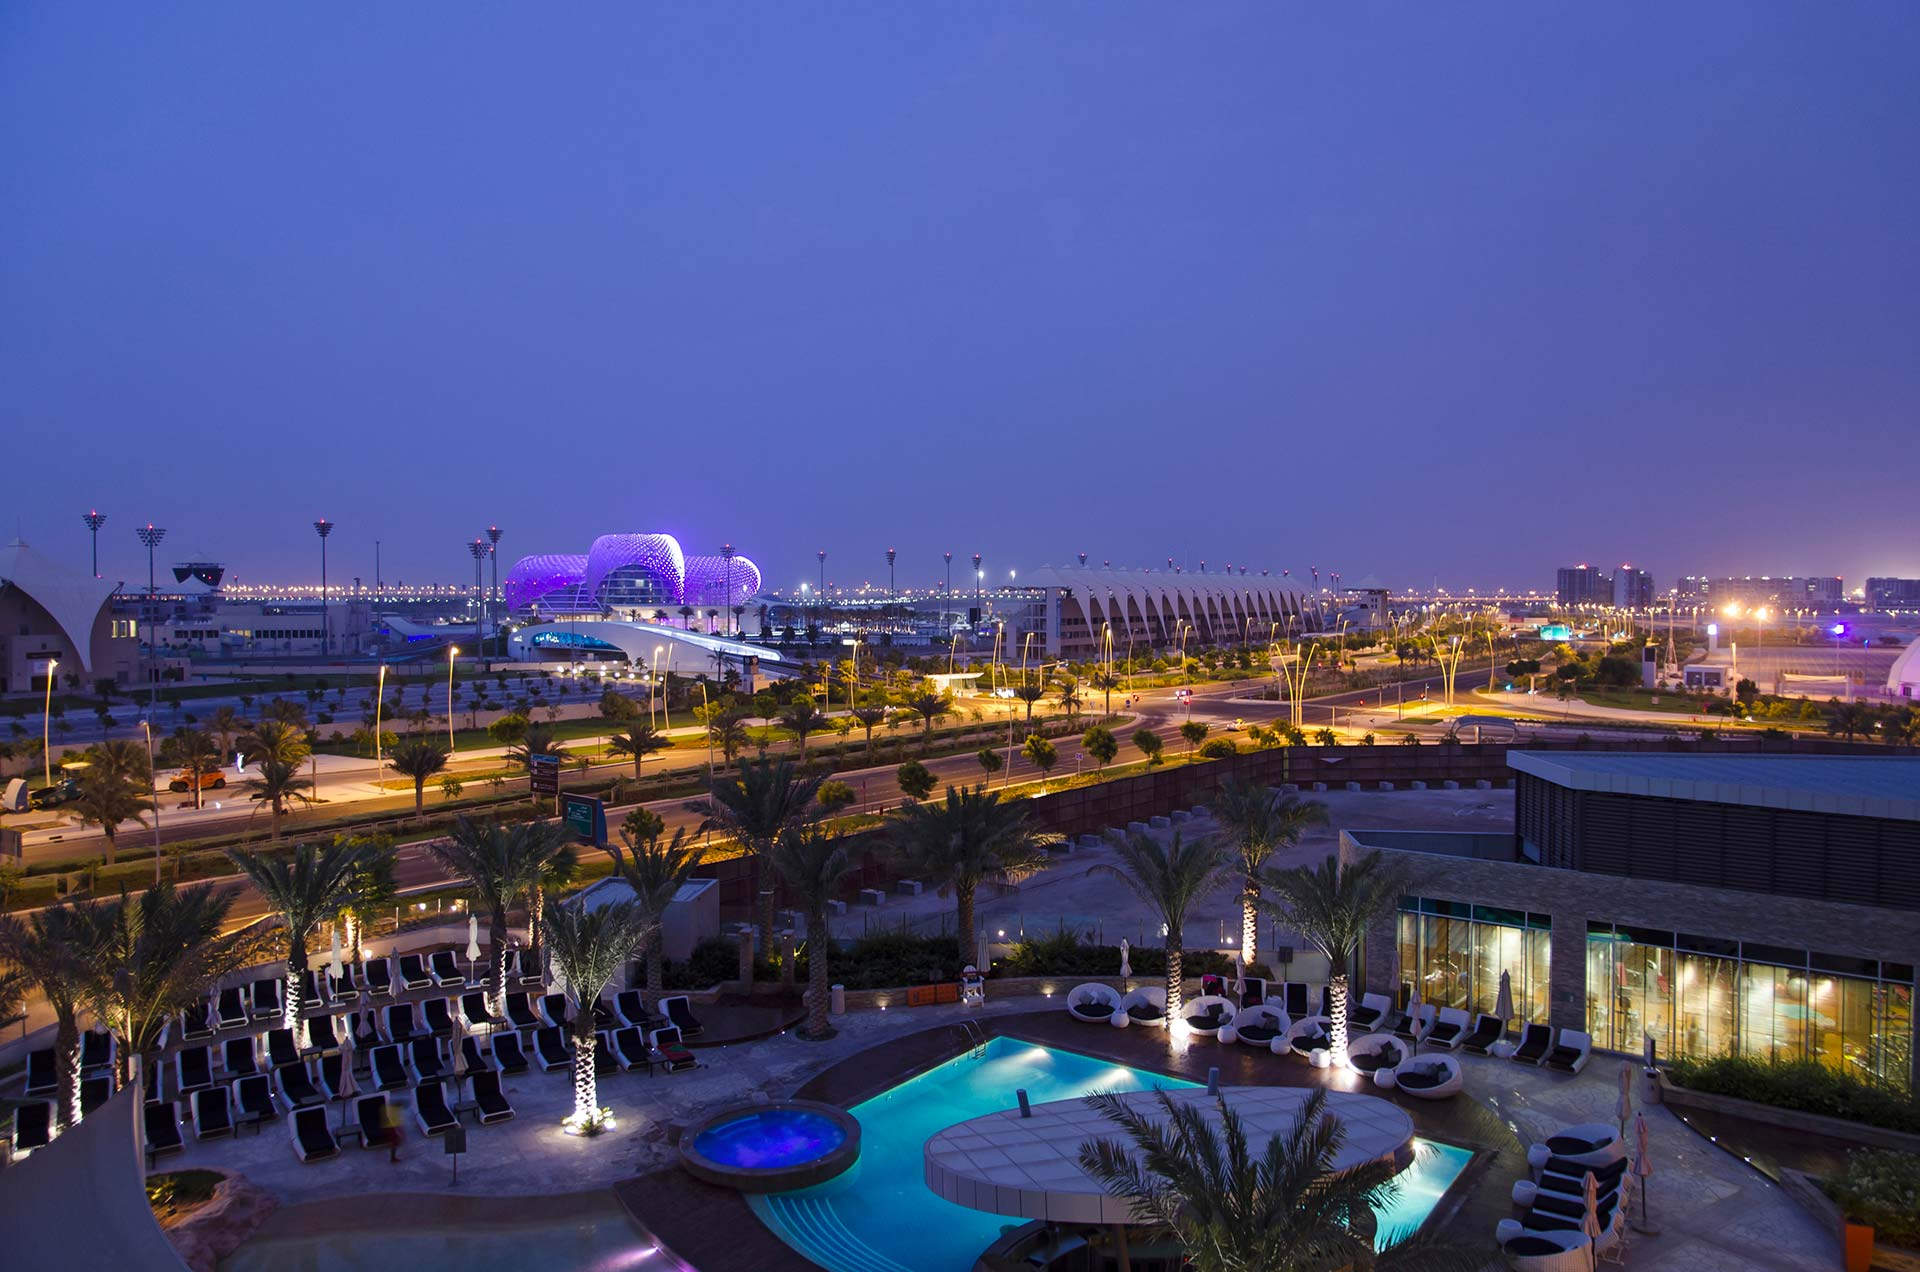 Yas Island Development